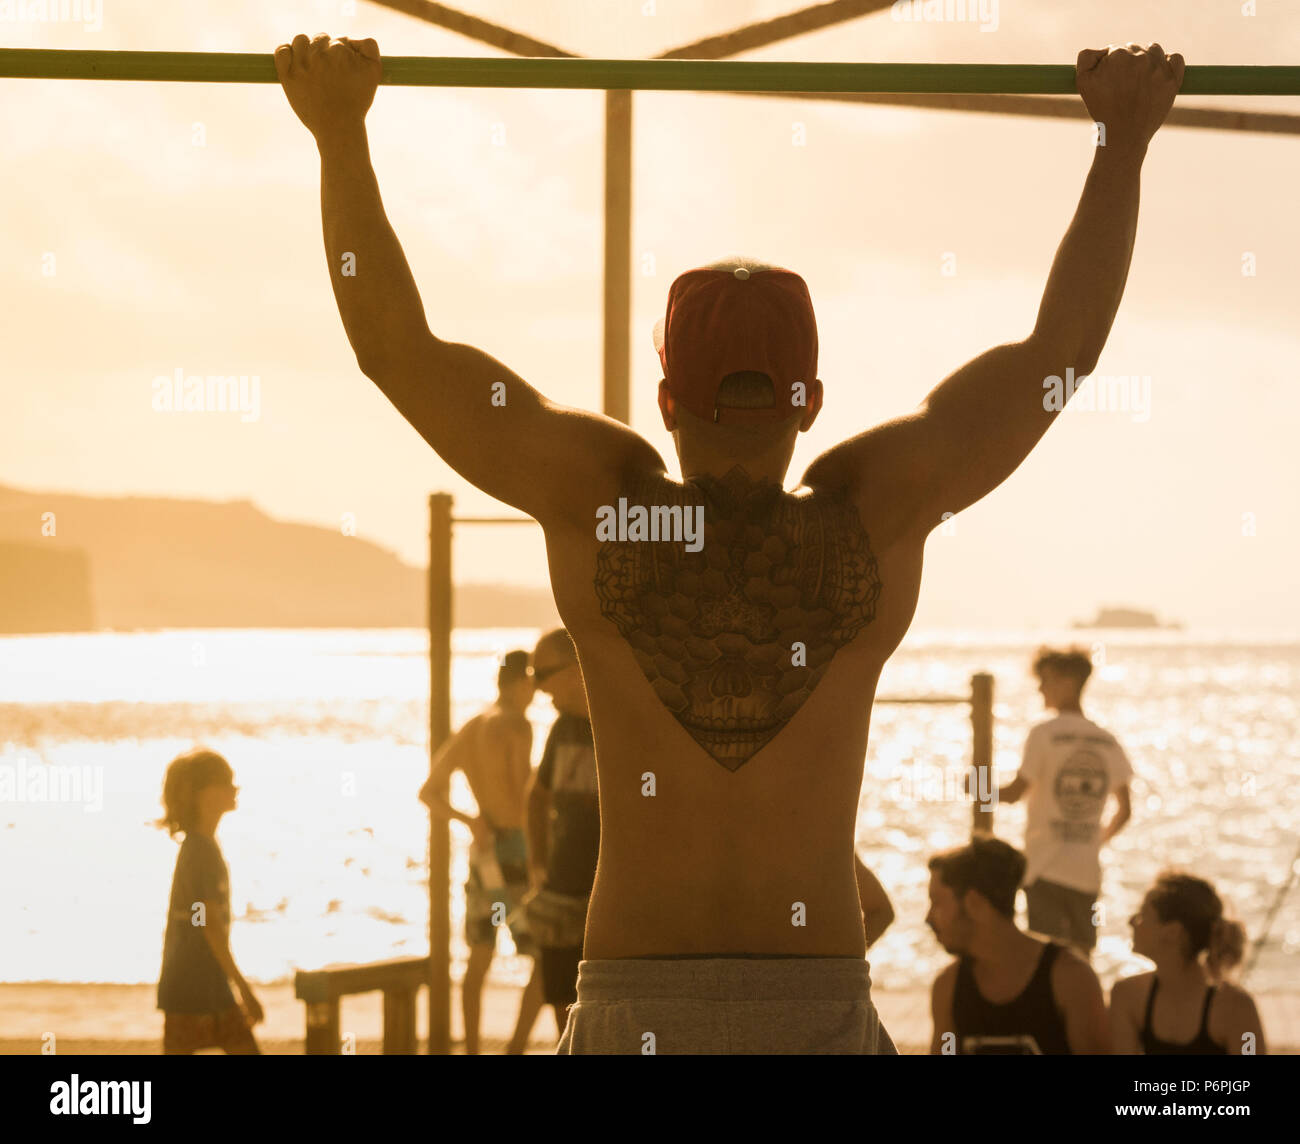 Rear view of muscular man with back tattoo doing pull ups/chin ups on beach in Spain - Stock Image